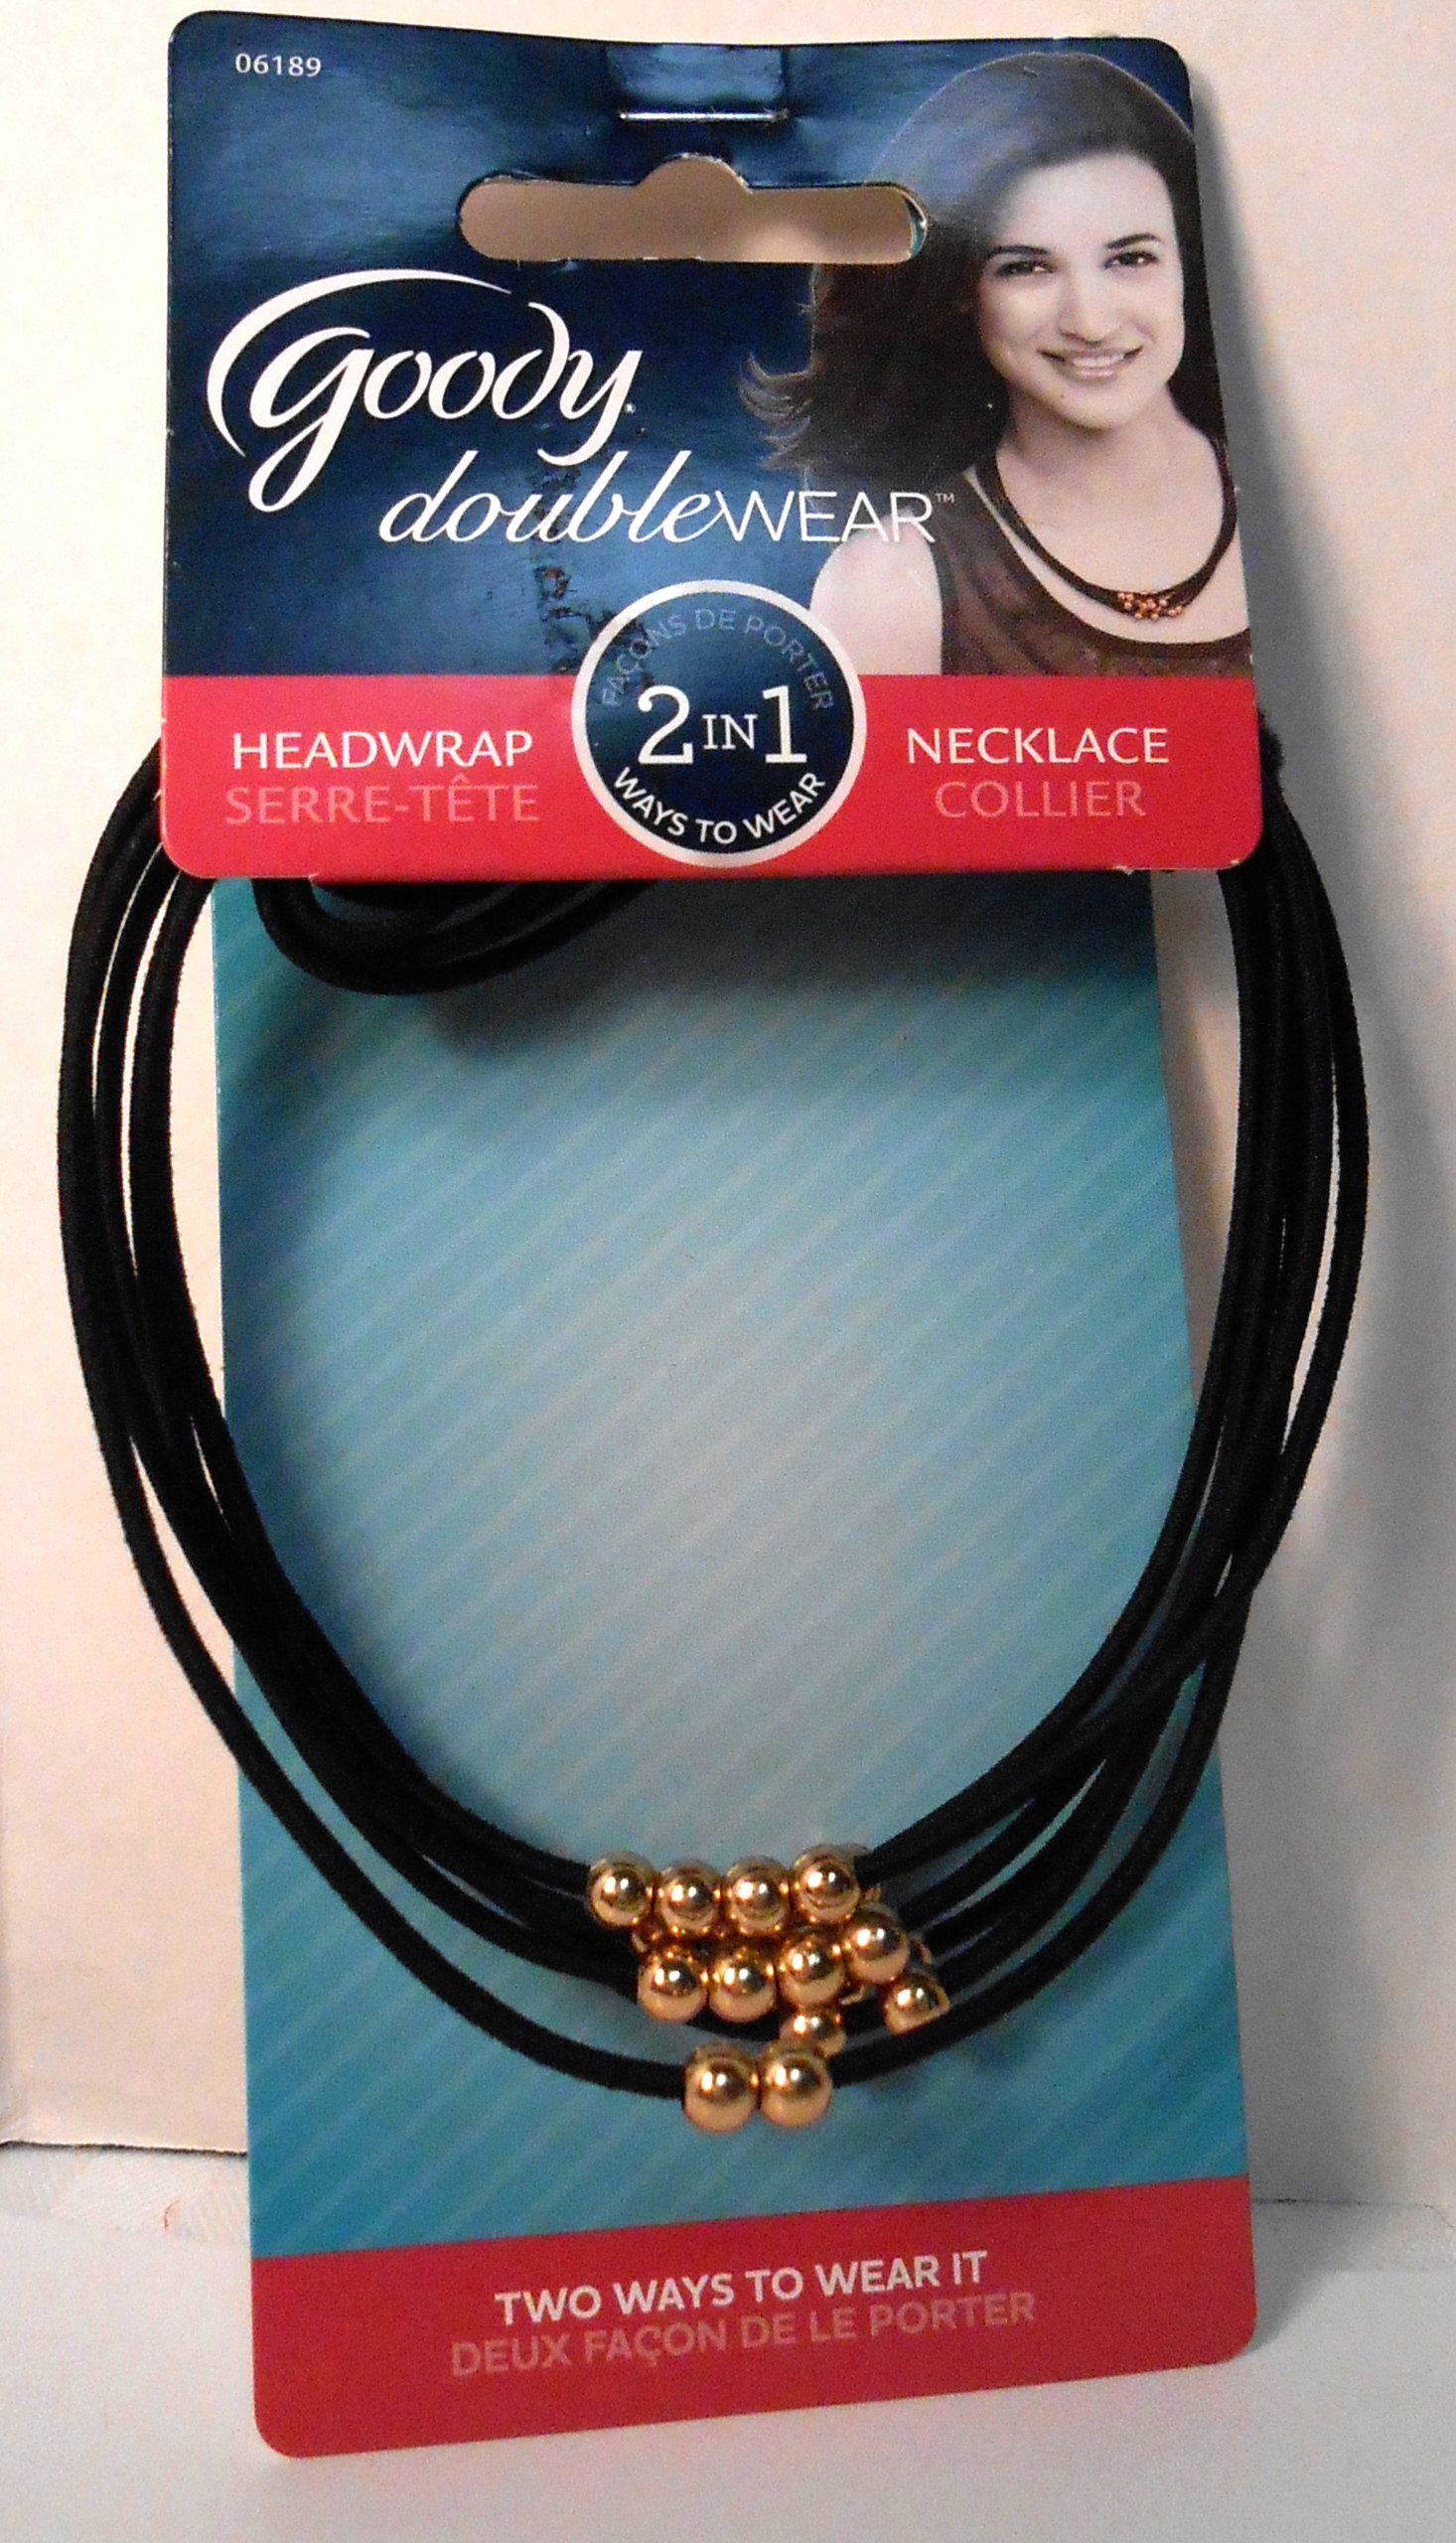 Goody 2 in 1 Headwrap Necklace Black Elastic Cords With Brass Like Beads NIP